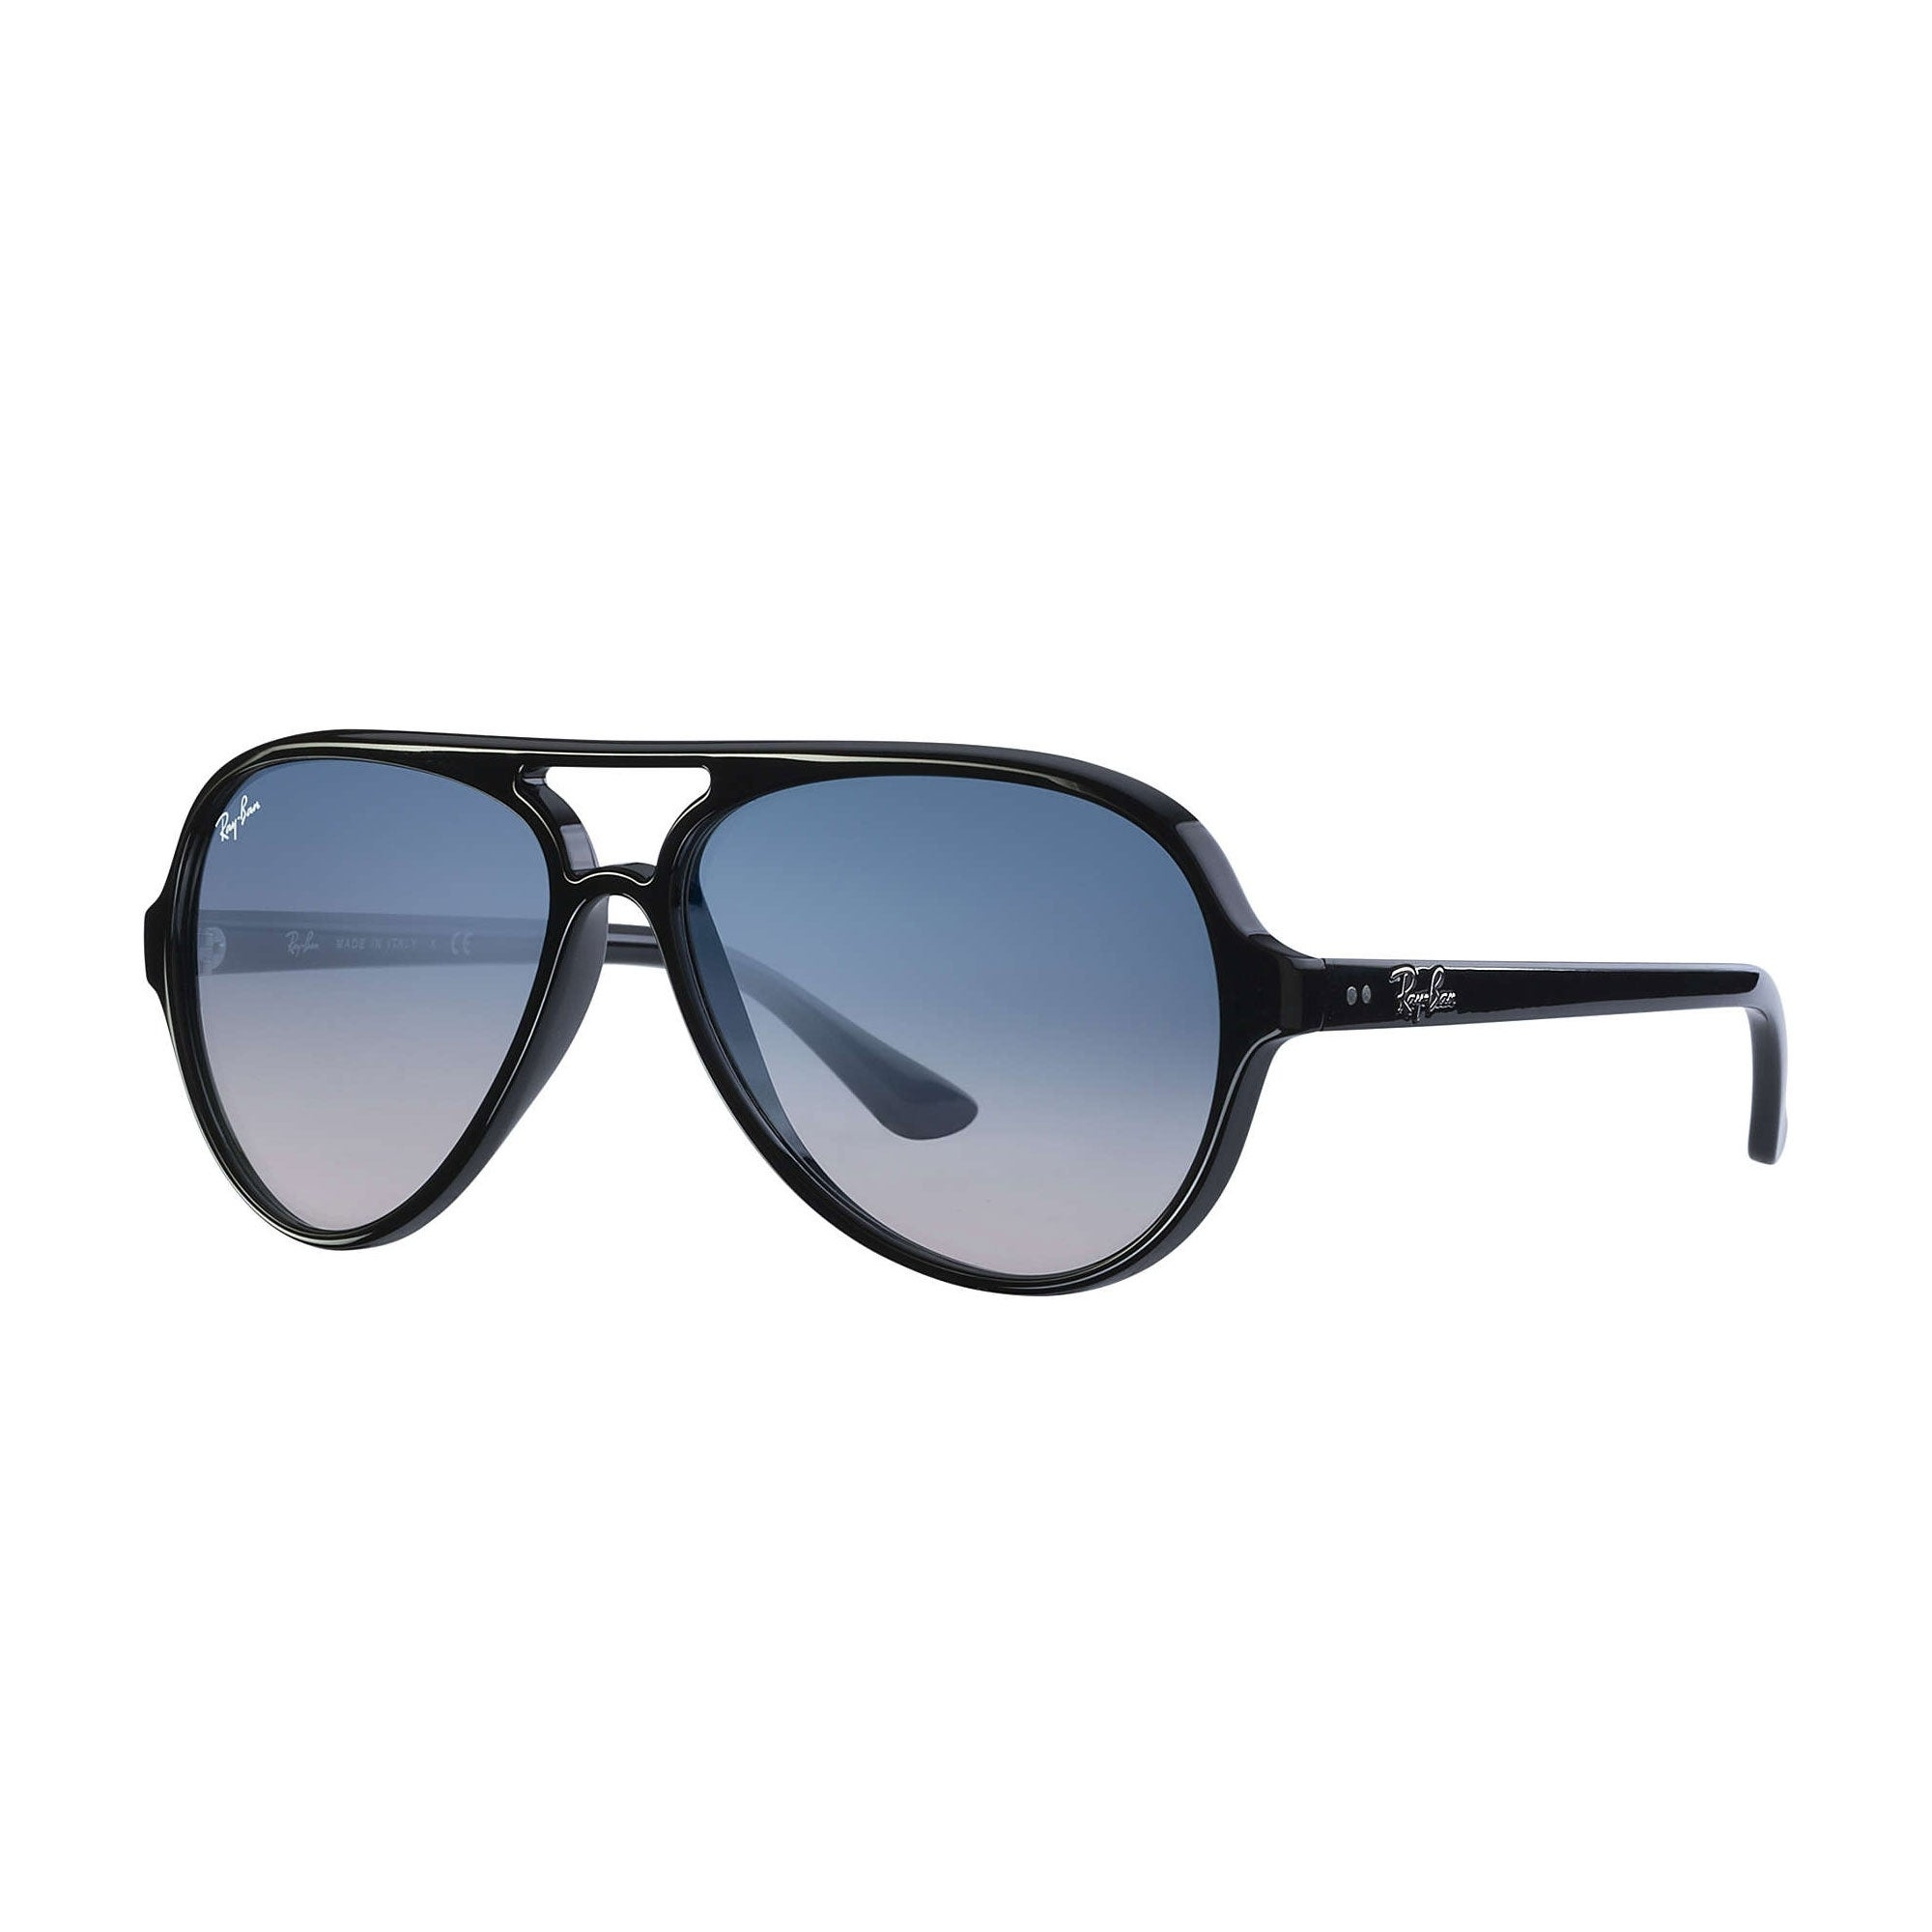 a26c7e67175de5 Shop Ray-Ban RB4125 Cats 5000 Classic Sunglasses 59mm - On Sale - Free  Shipping Today - Overstock - 24301407